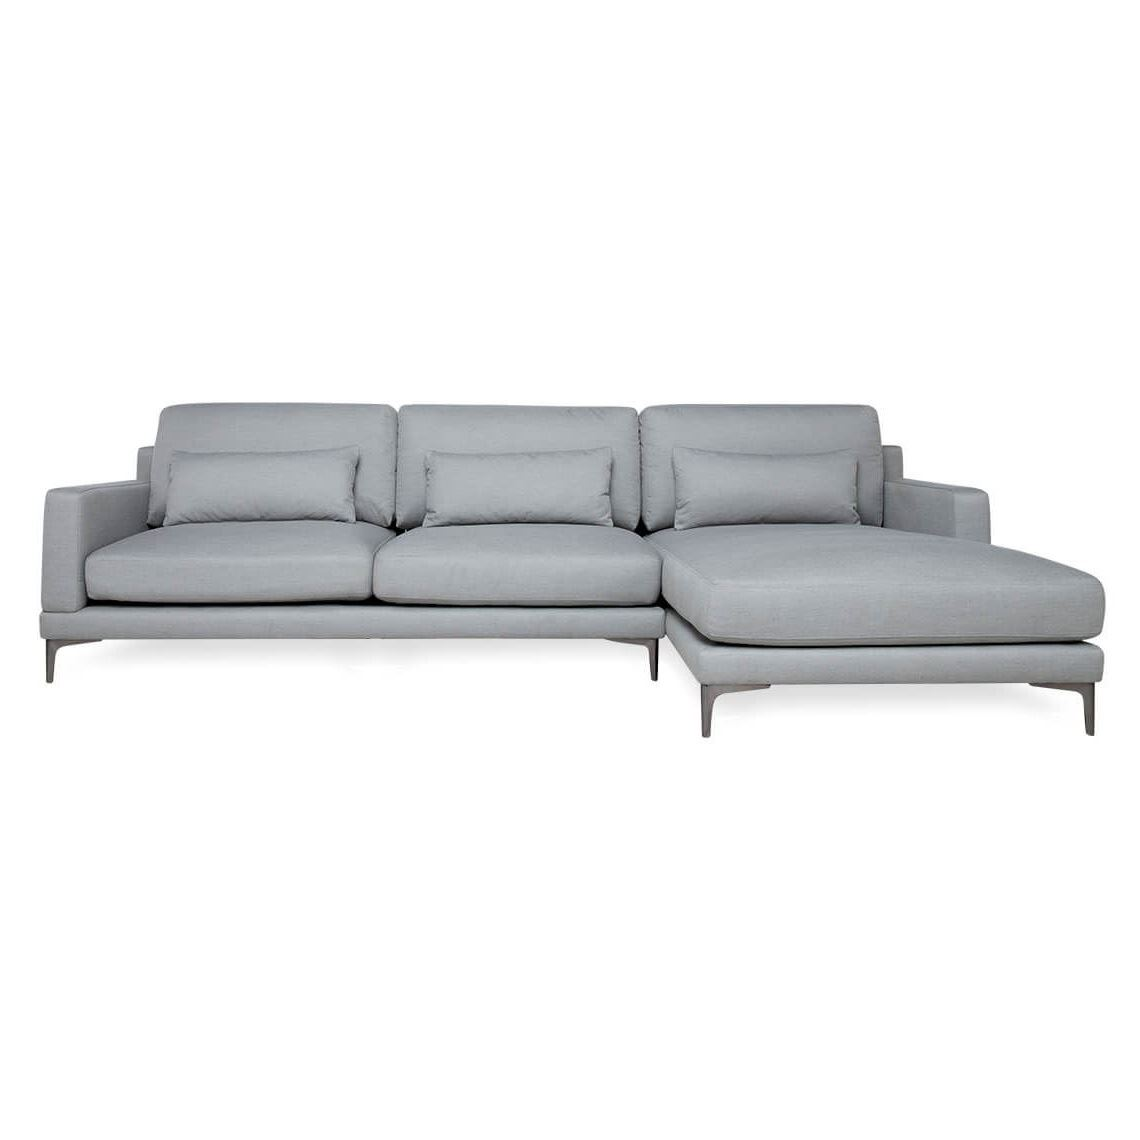 Dahlia 2 Seater Sofa Freedom Kin 3 Seat Fabric Modular Sofa With Right Chaise Products